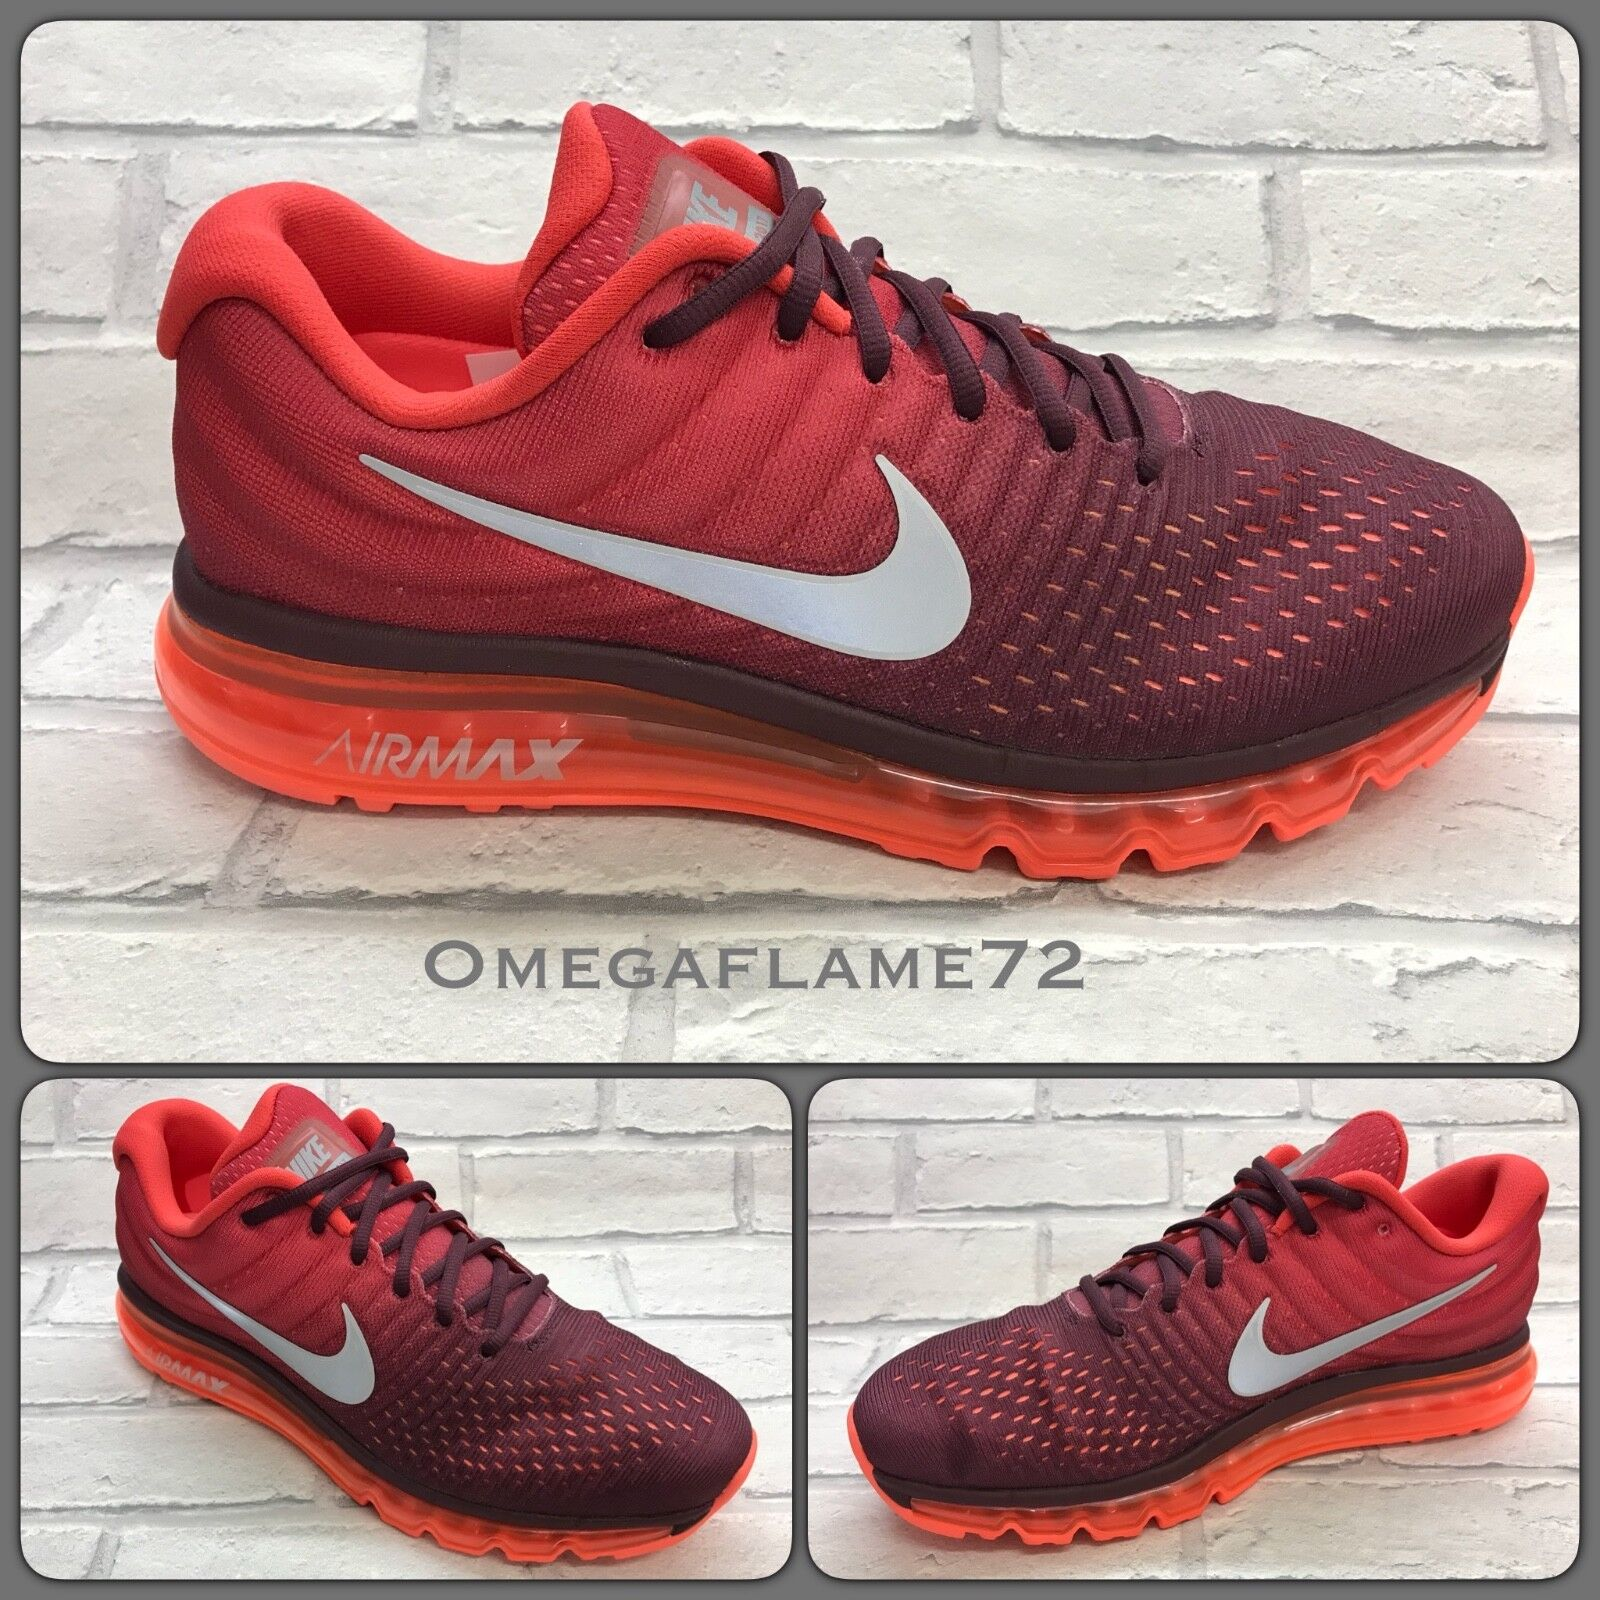 Nike Air Max 2017, NEUF NEUF NEUF sans étiquette Tailles US 14, 849559-601, Nuit Marron-Gym Red 03f78d